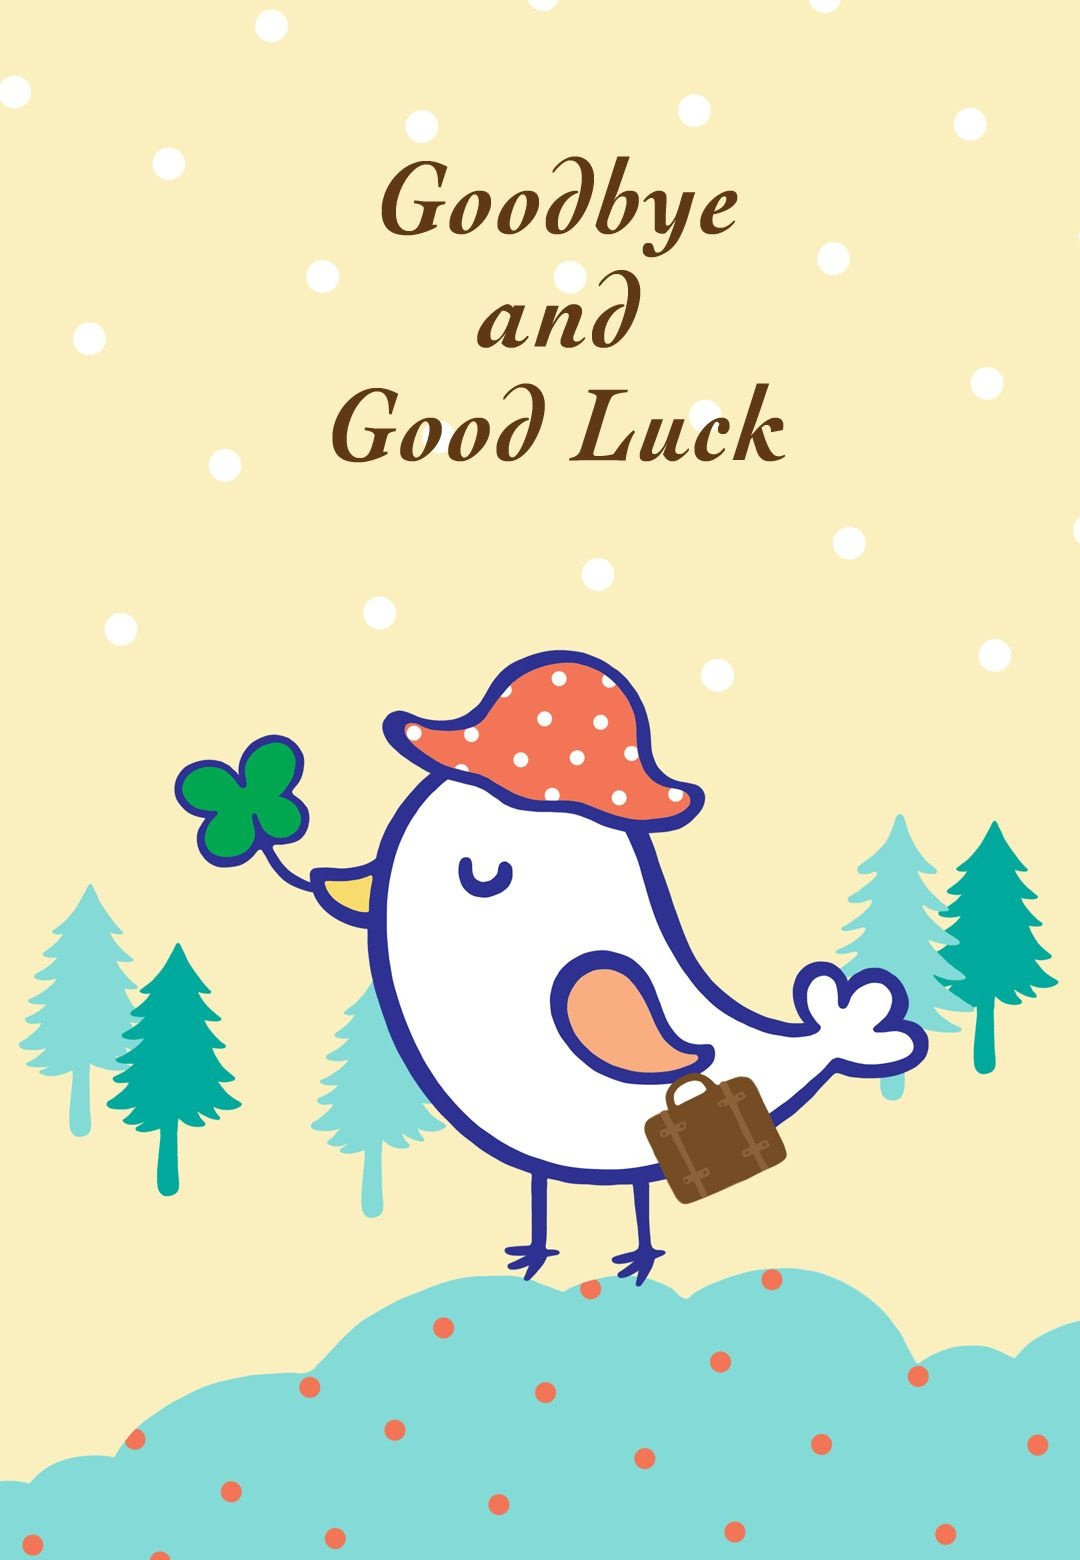 Free Printable Goodbye And Good Luck Greeting Card   Littlestar - Free Printable Farewell Card For Coworker